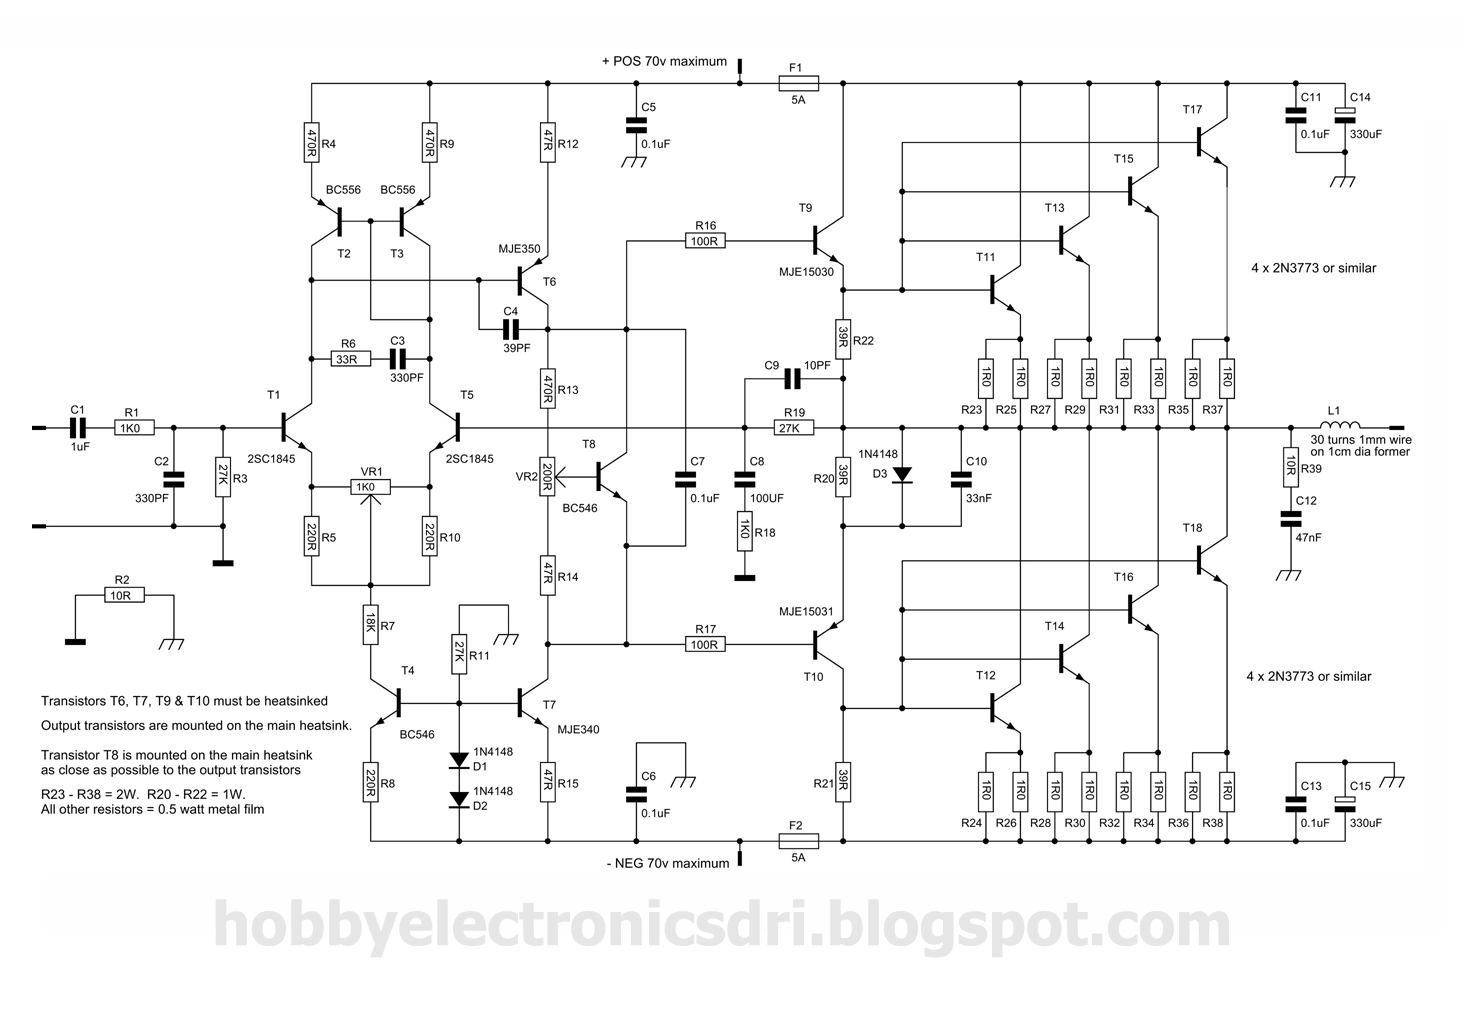 200w power amplifier circuit diagram circuit diagram images amplifier circuit diagram for subwoofer amplifier circuit diagram 1000w pdf